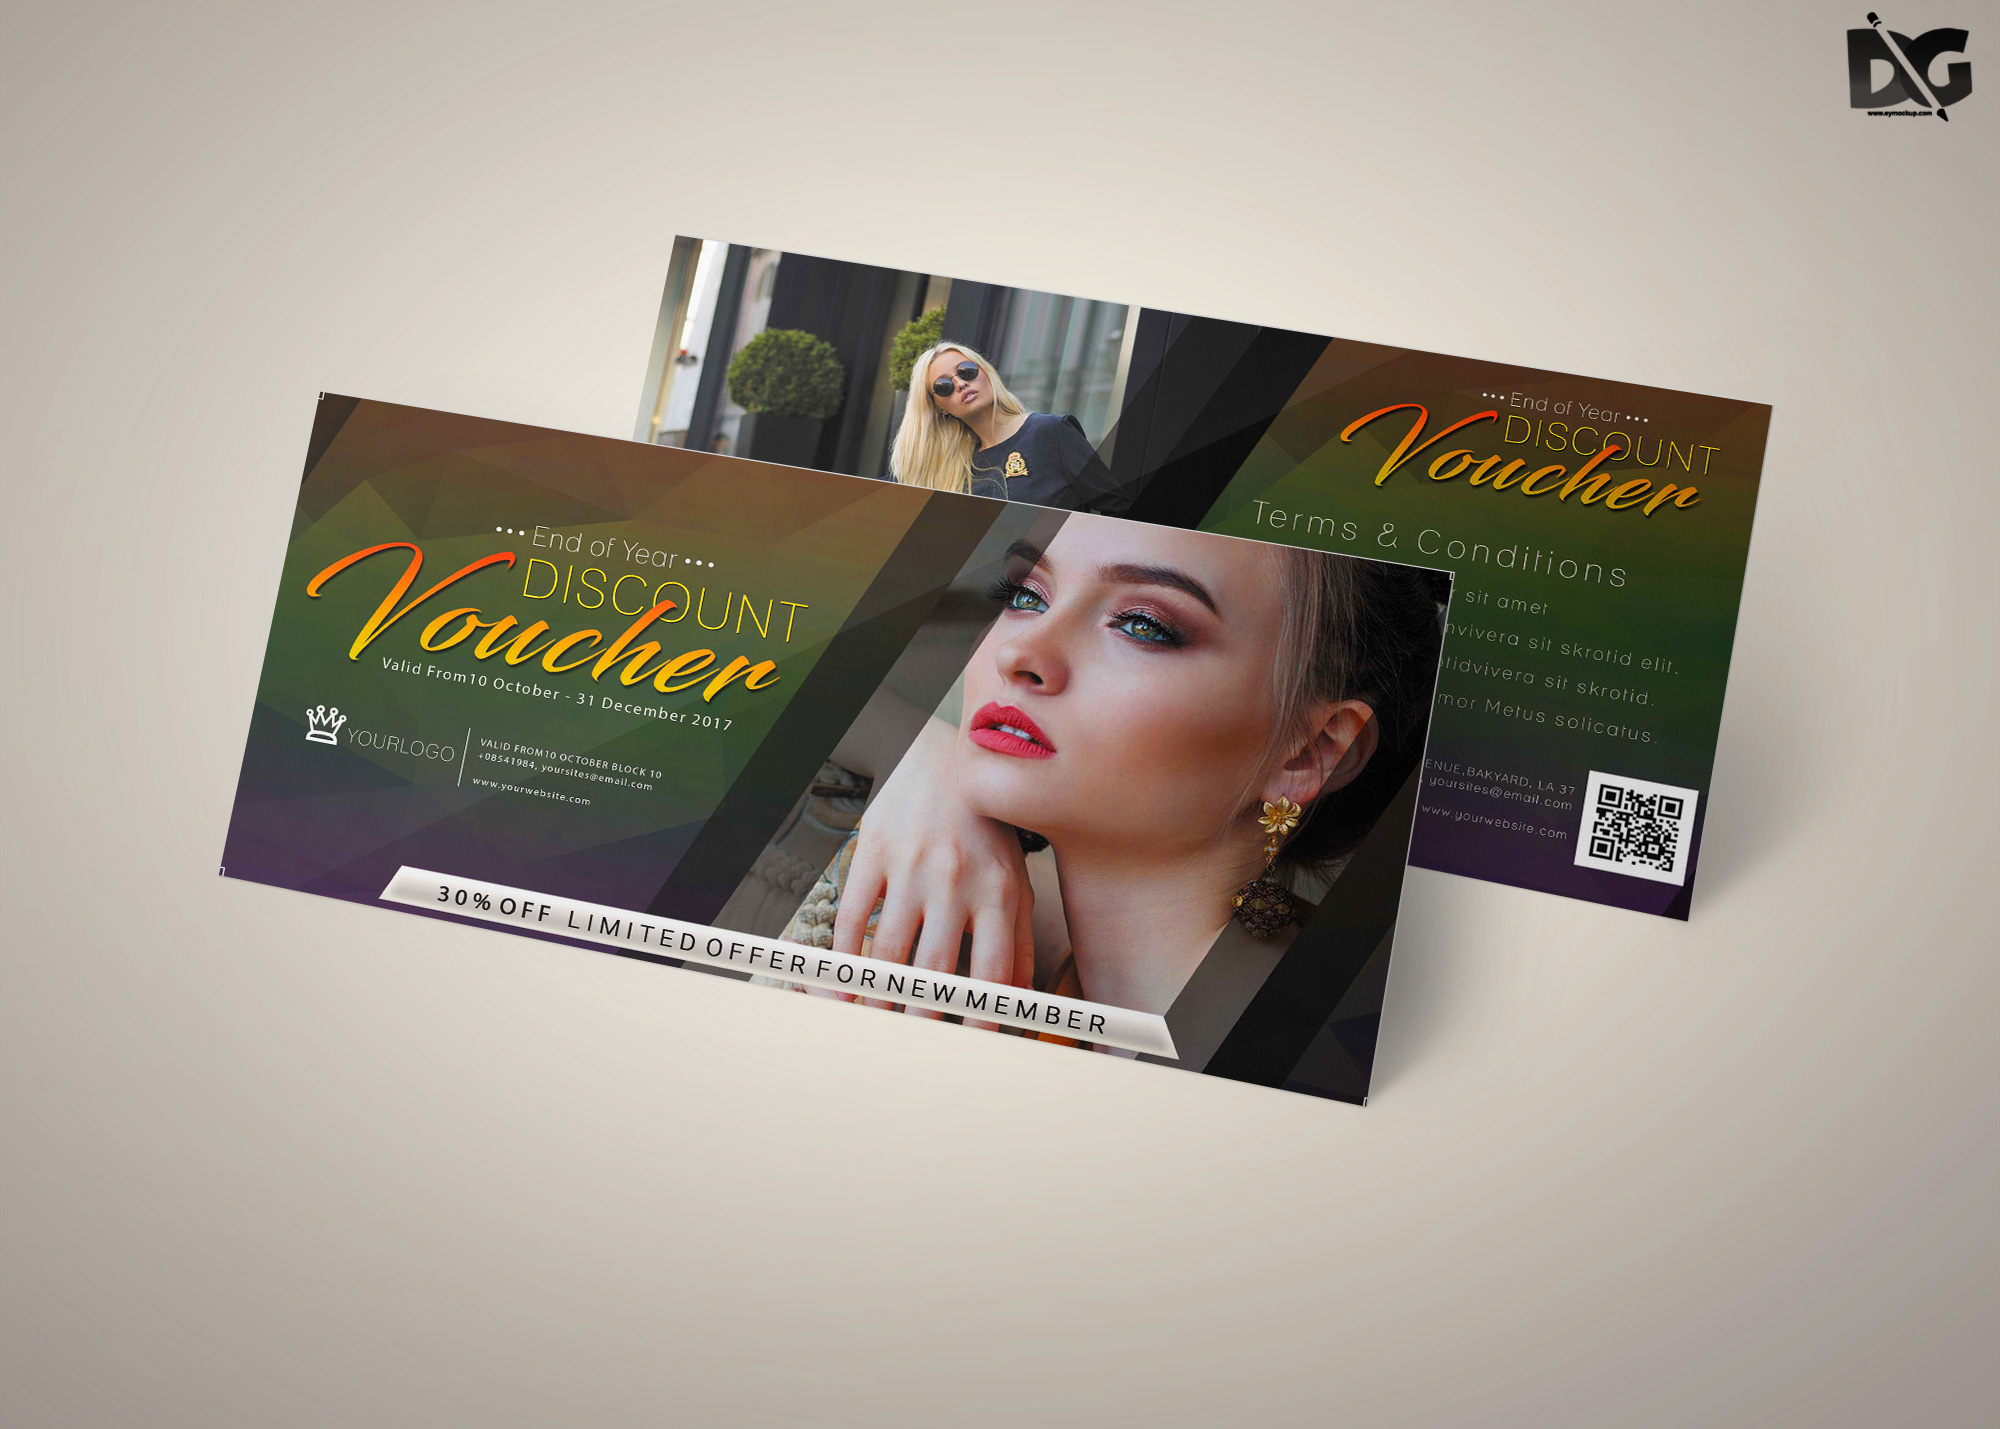 Free Download Photoshoot Gift Card PSD Template